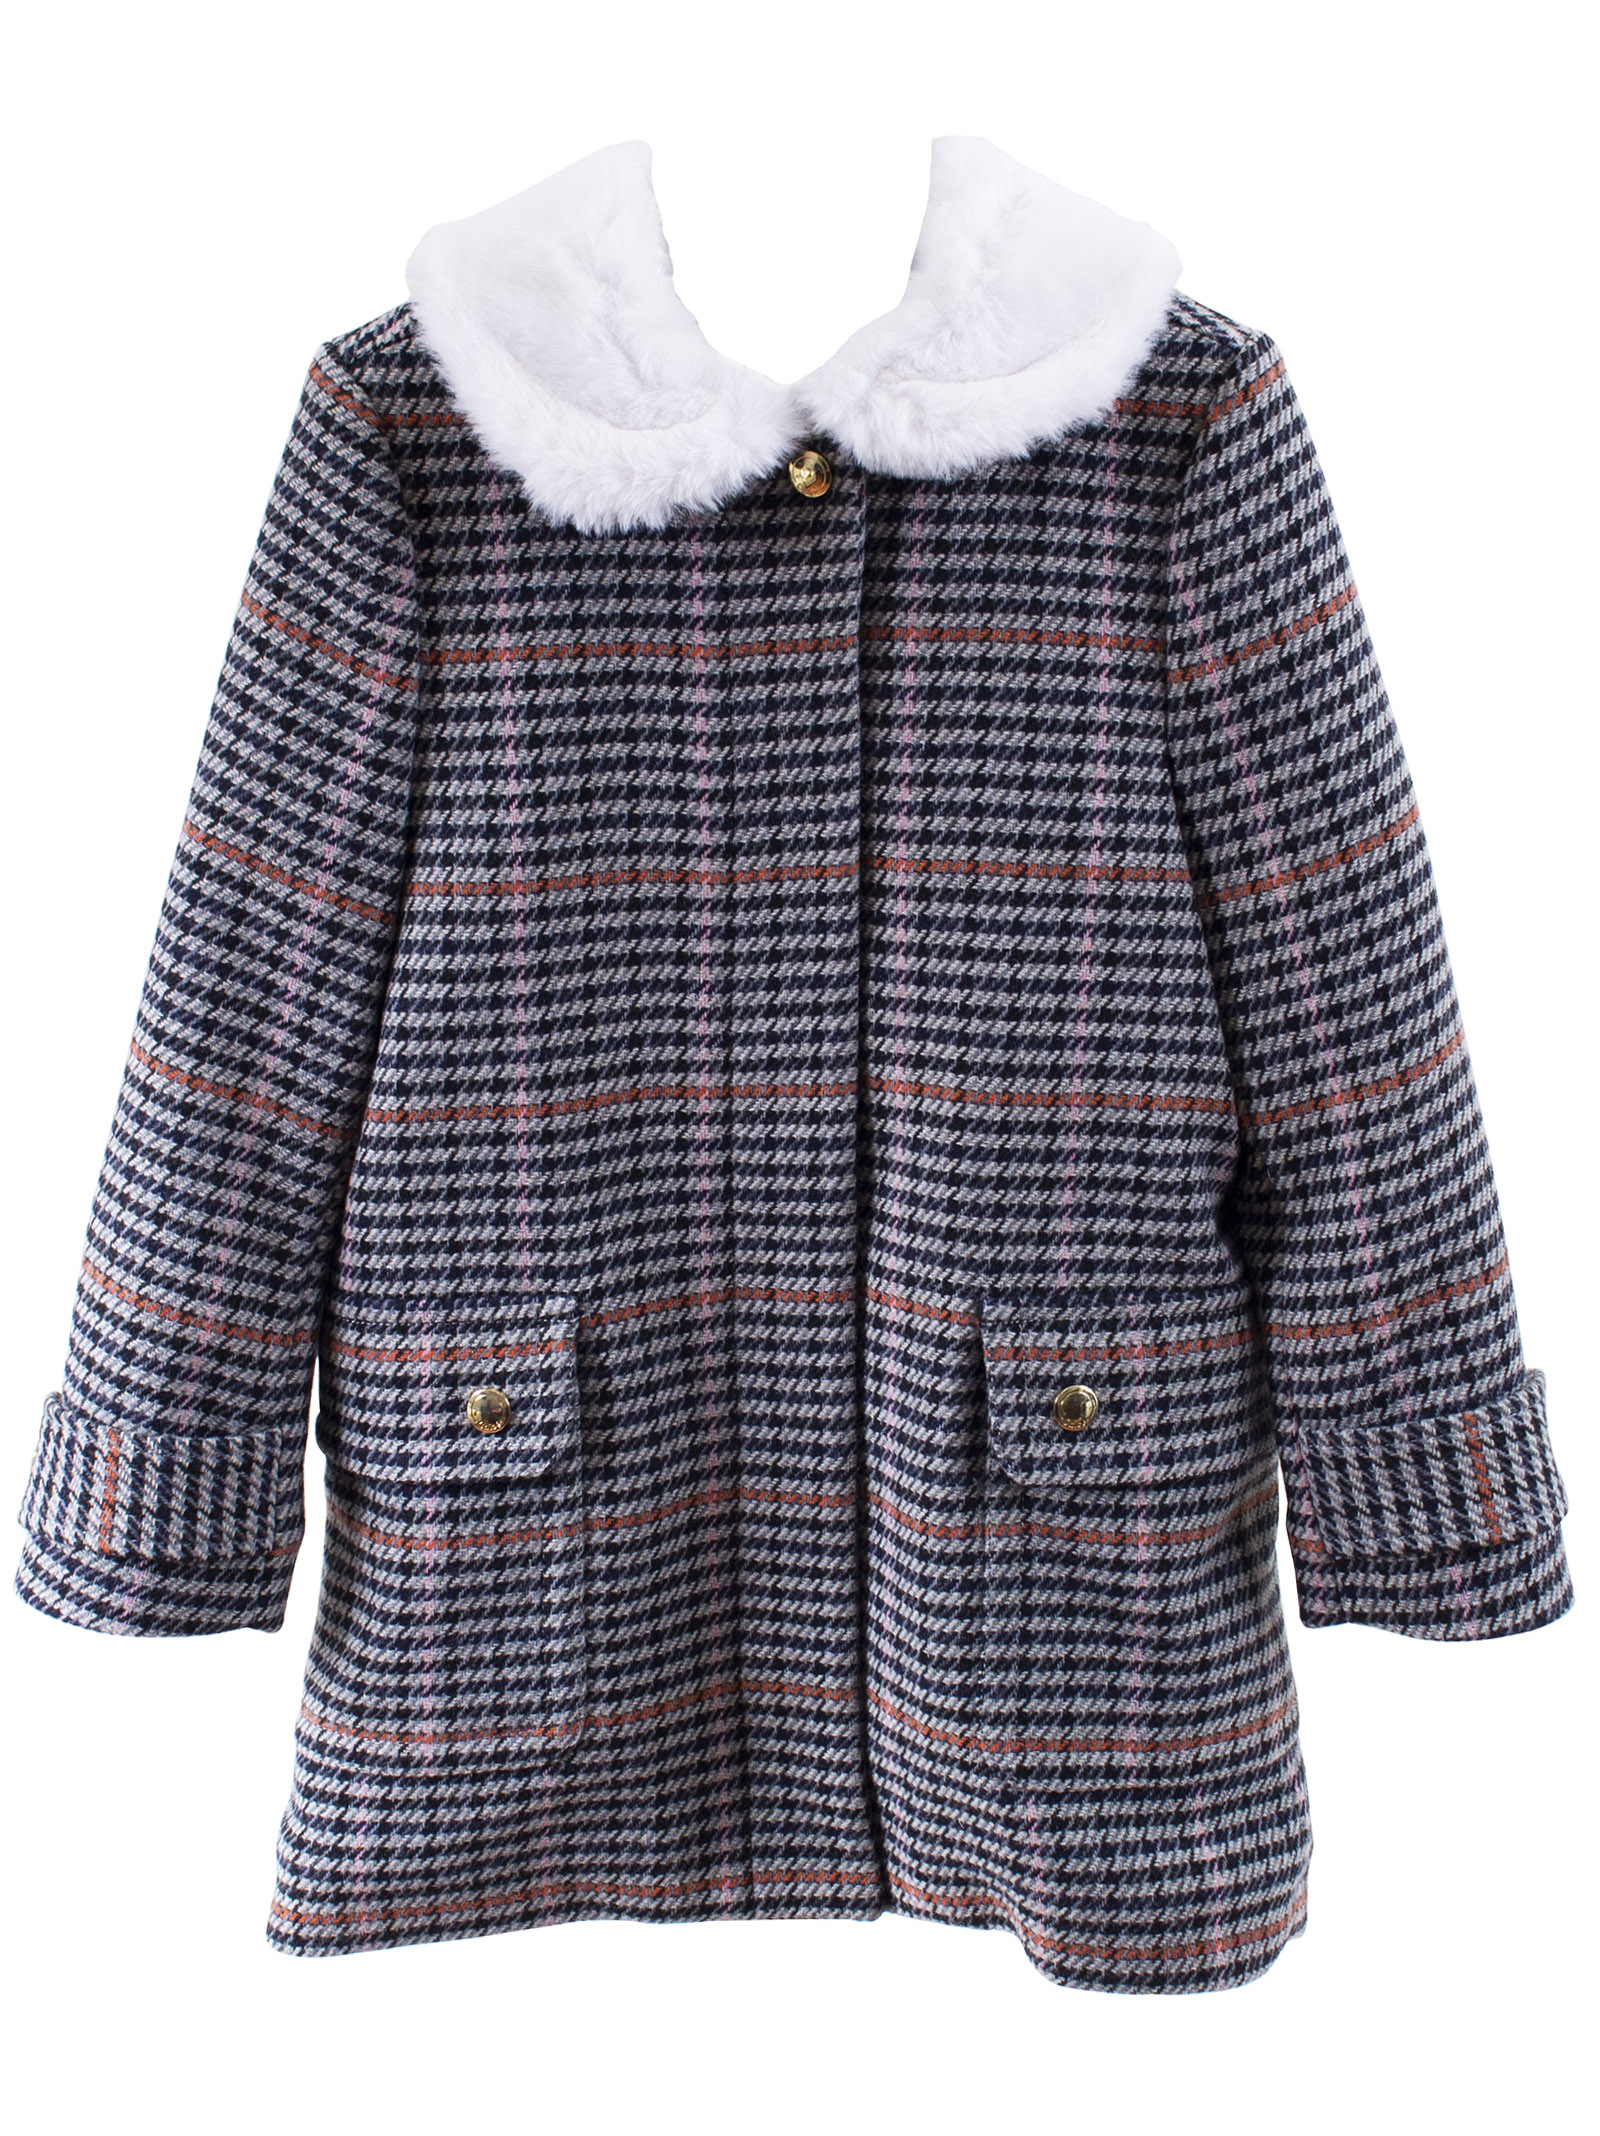 sneakers for cheap 035c8 0f280 Cappotto bambina